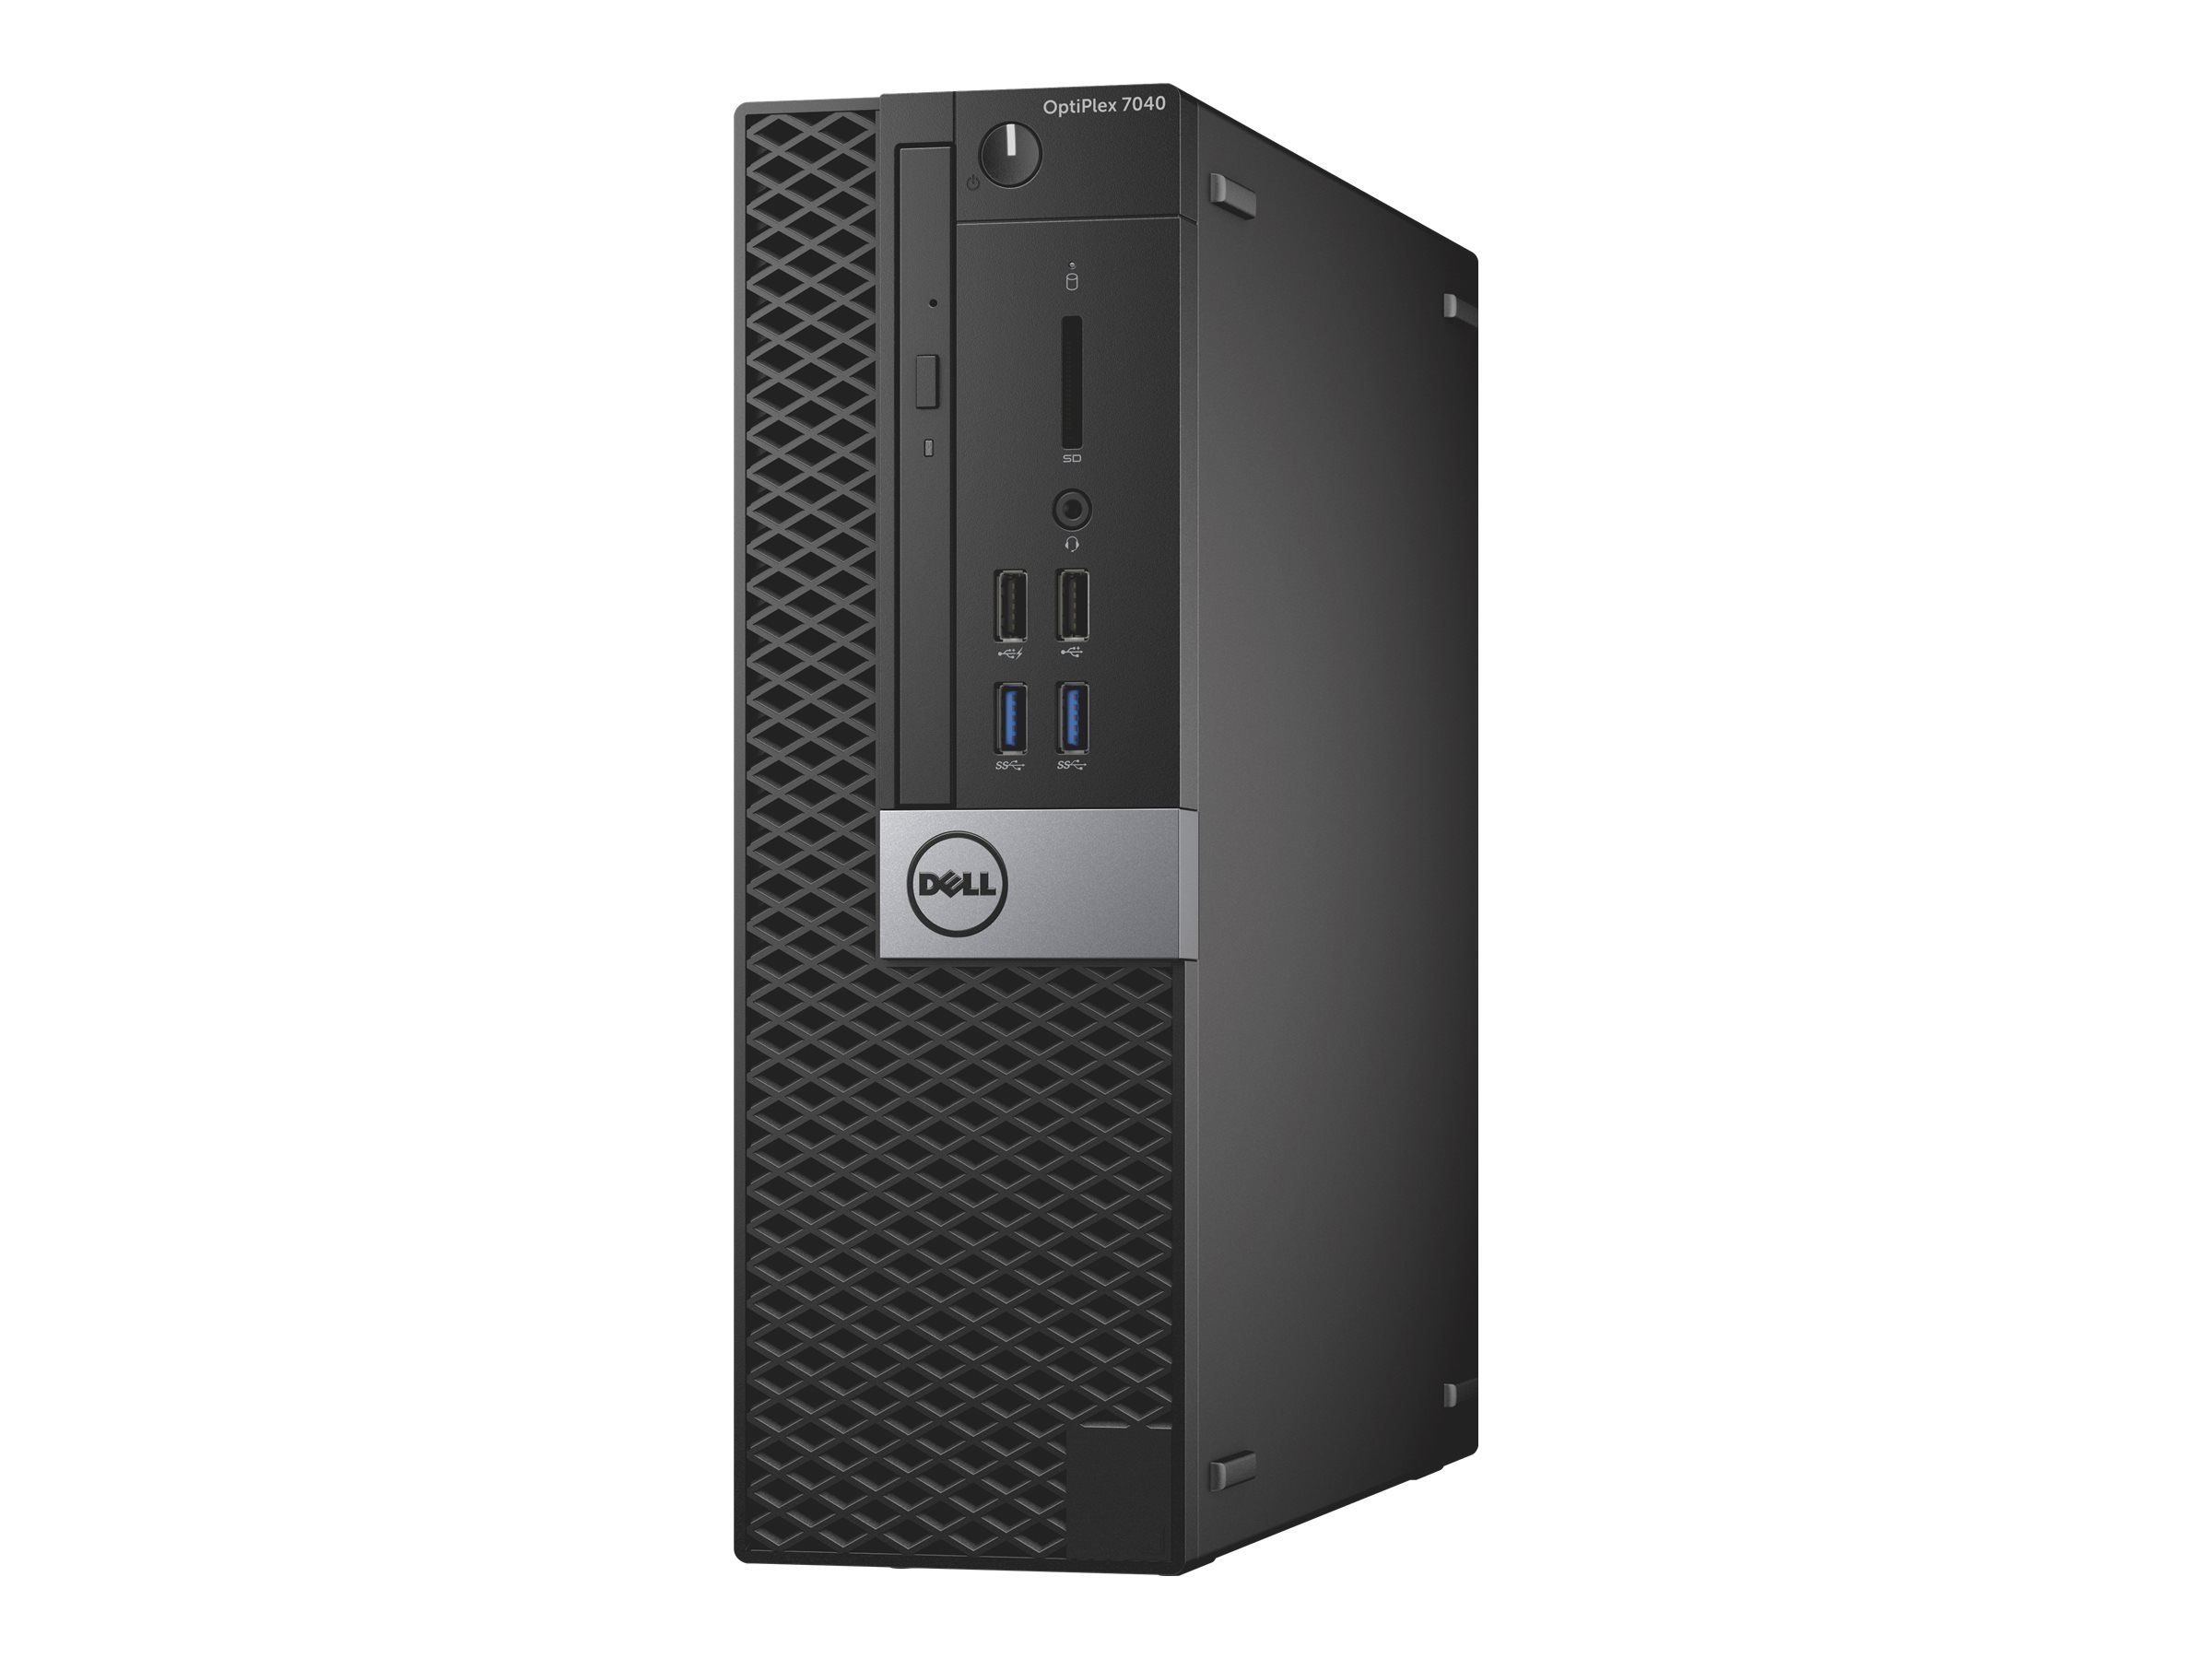 Dell OptiPlex 7040 - SFF - 1 x Core i5 6500 / 3.2 GHz - RAM 8 GB - SSD 128 GB - DVD-Writer